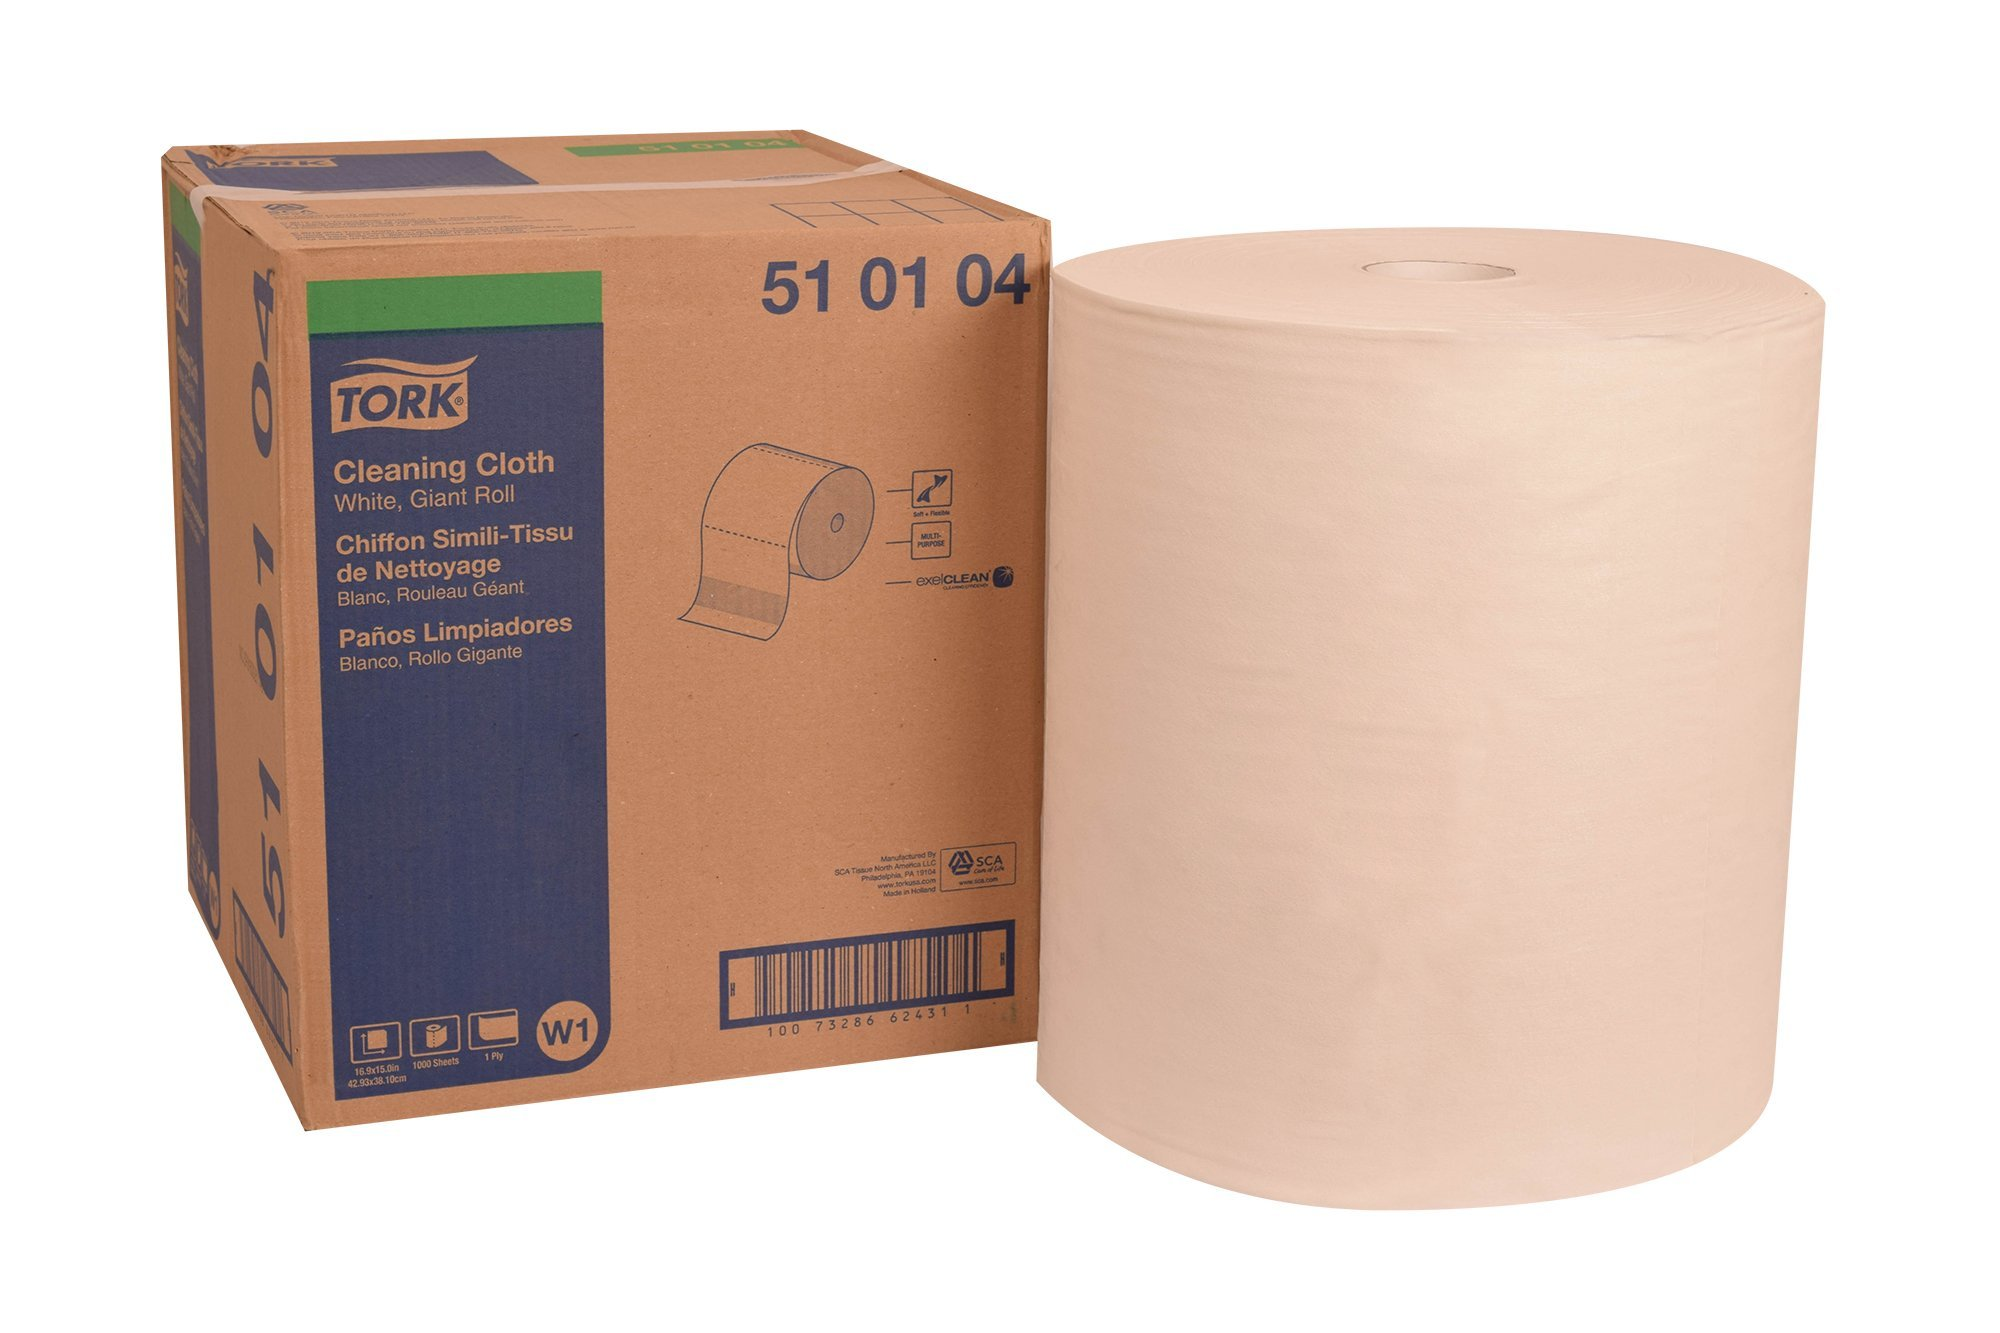 Tork 510104 Cleaning Cloth, Giant Roll, 1-Ply, 16.9'' Width x 1250' Length, 14.96'' Roll Diameter, White (Case of 1 Roll) by Tork